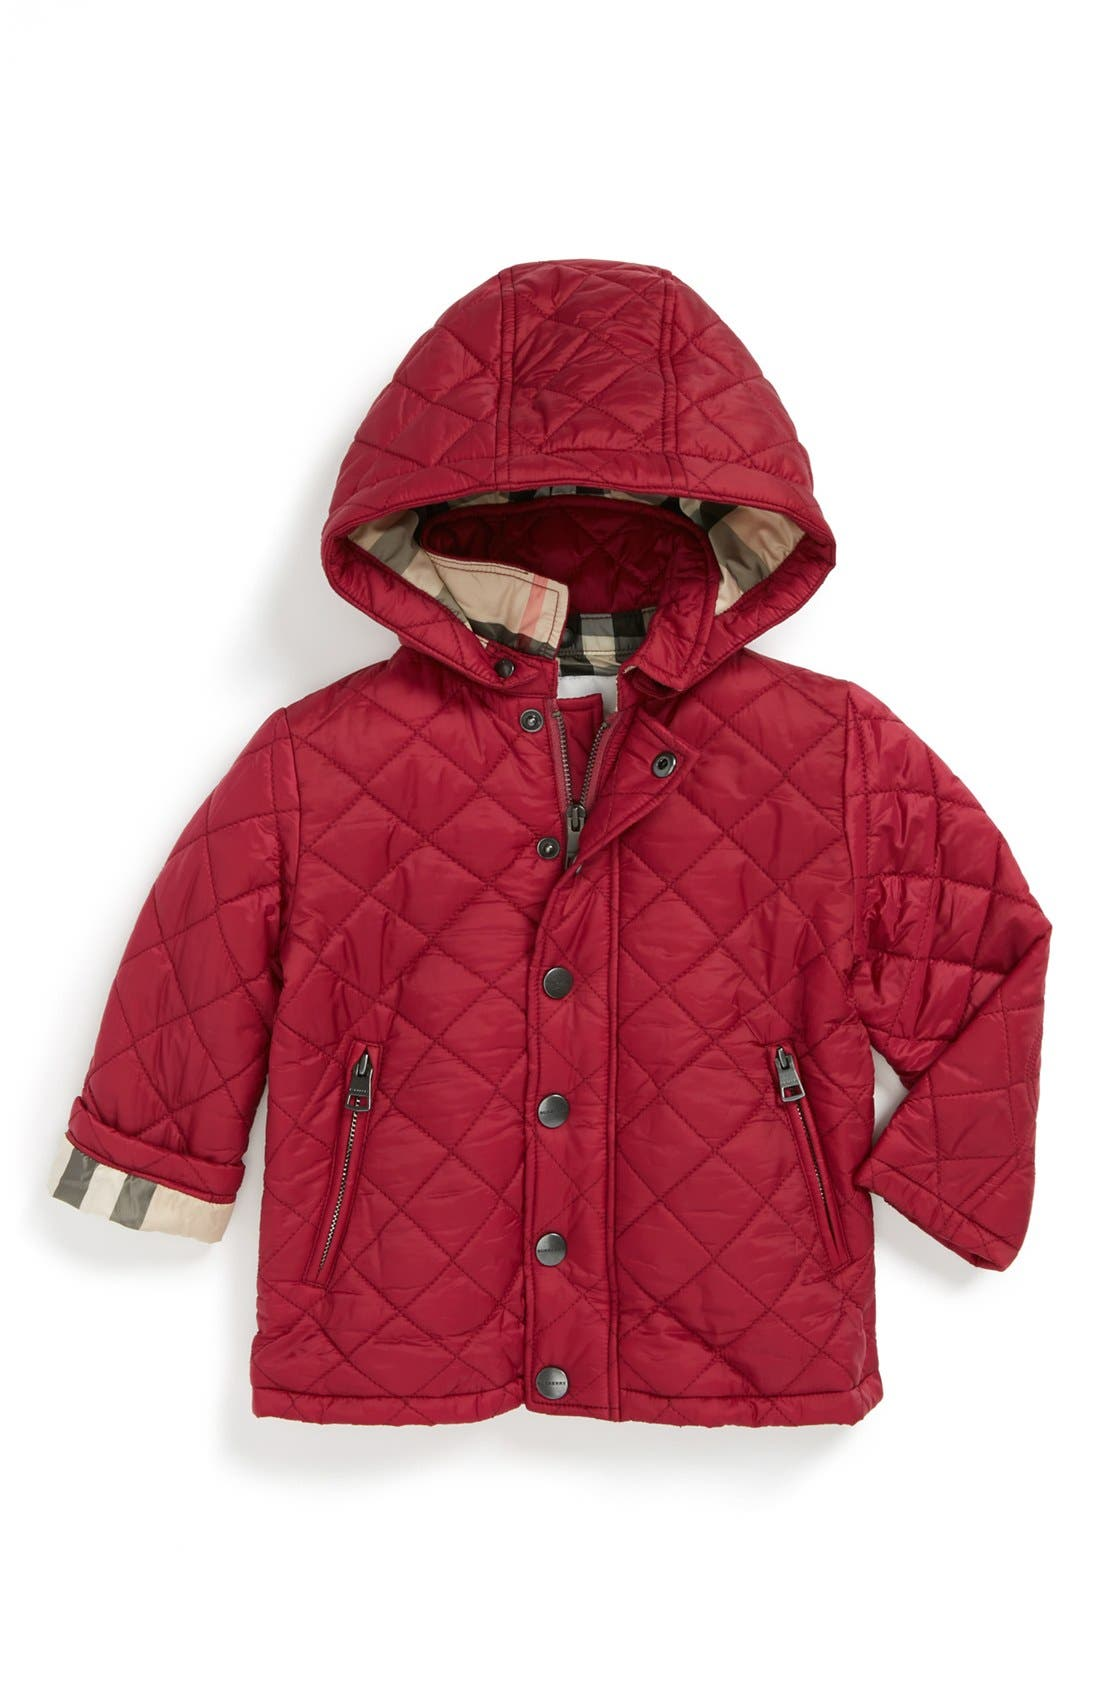 Alternate Image 1 Selected - Burberry Quilted Jacket (Baby Girls)